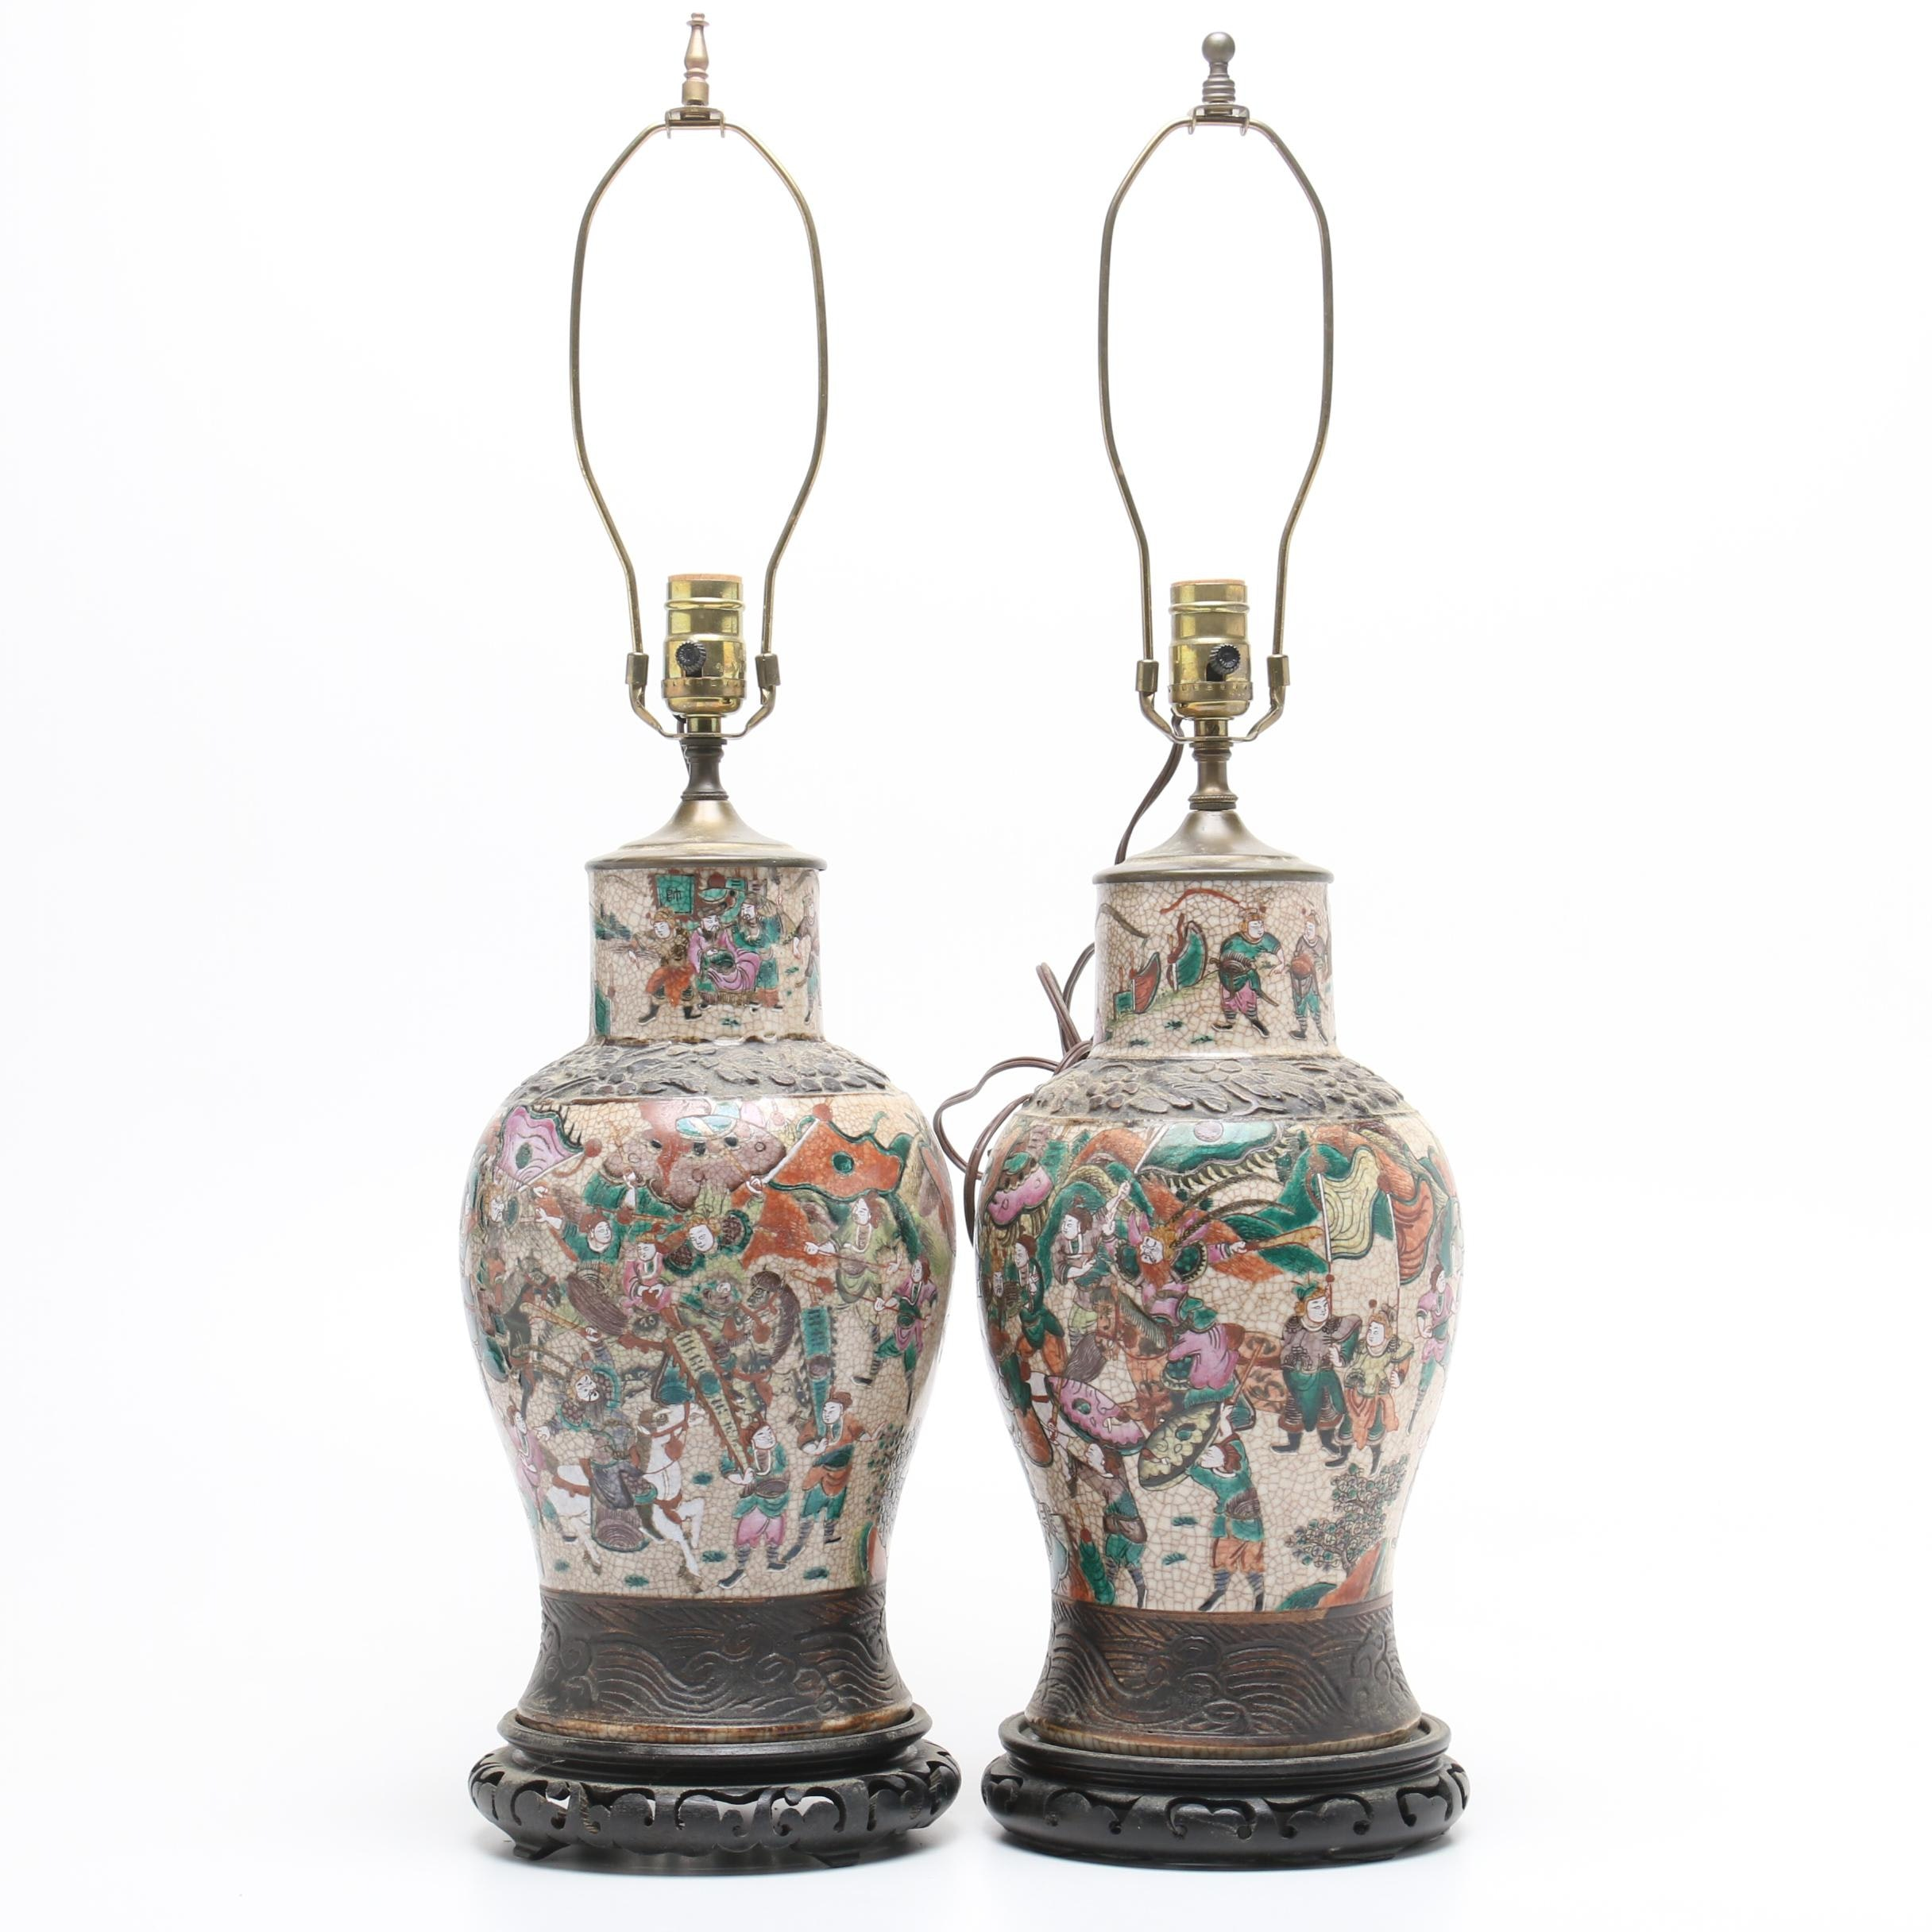 Chinese Hand-Painted Stoneware Vase Table Lamps with Wooden Bases